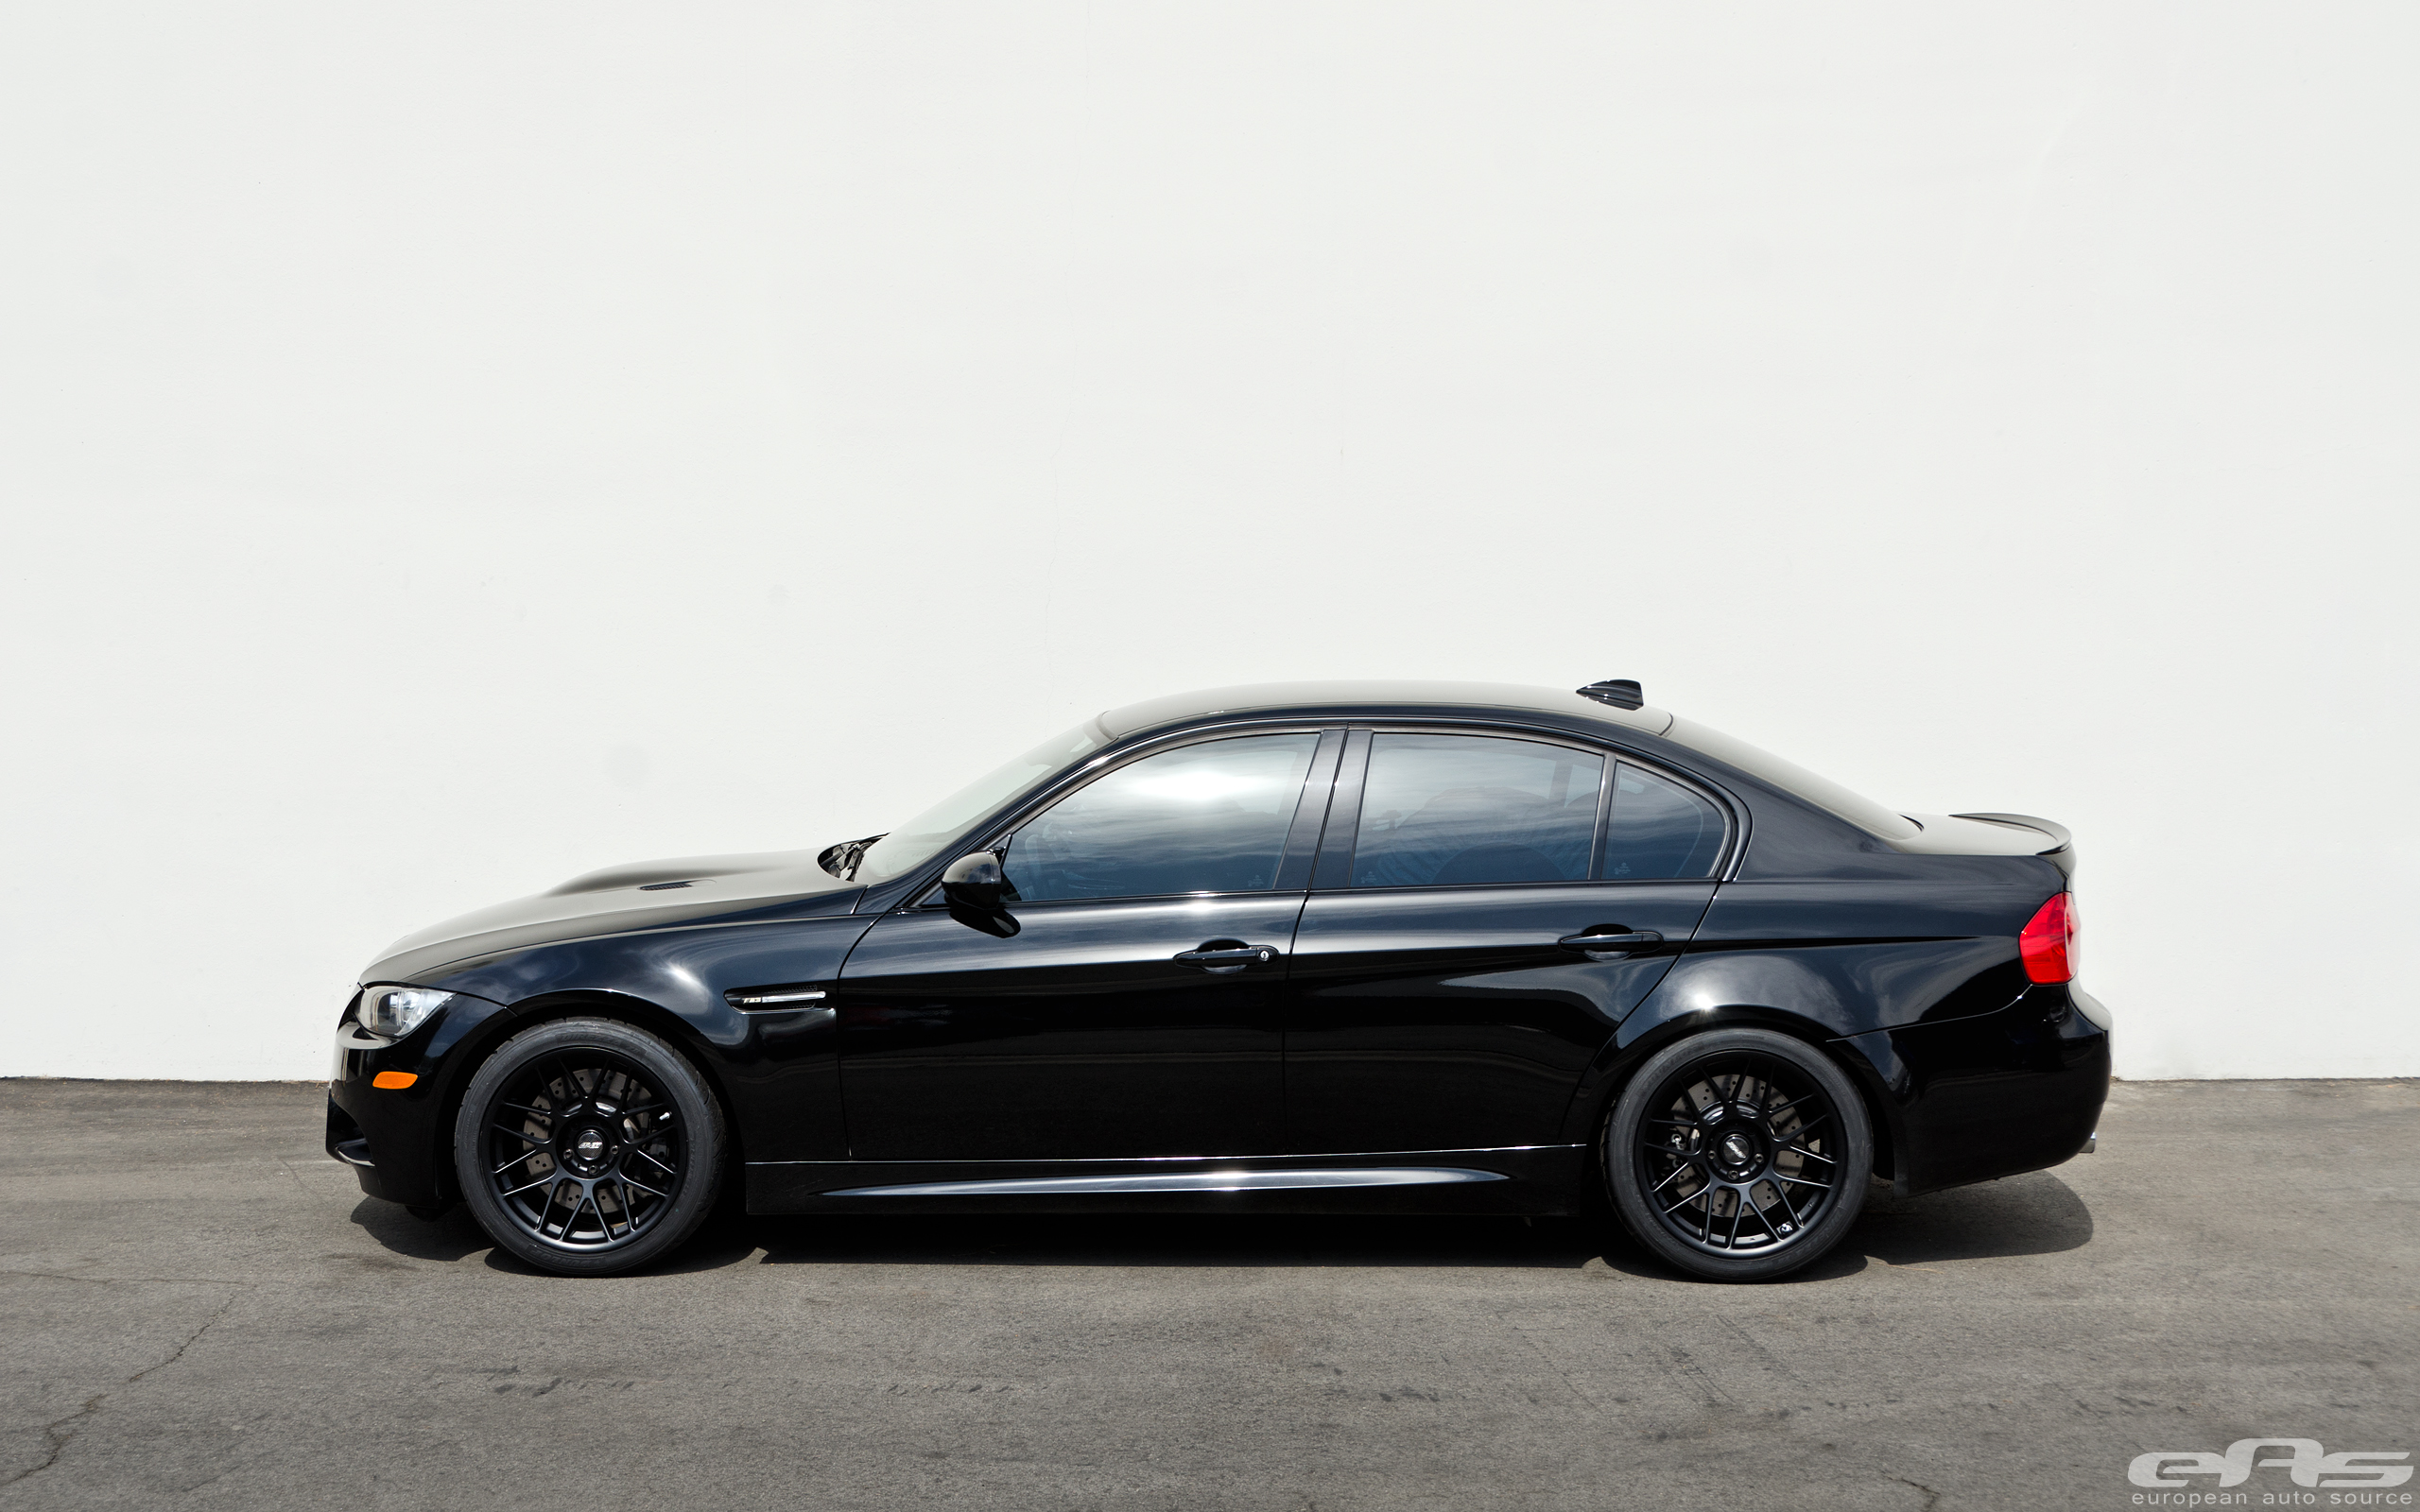 black bmw m3 sedan. black arc8 wheels on a m3 sedan bmw